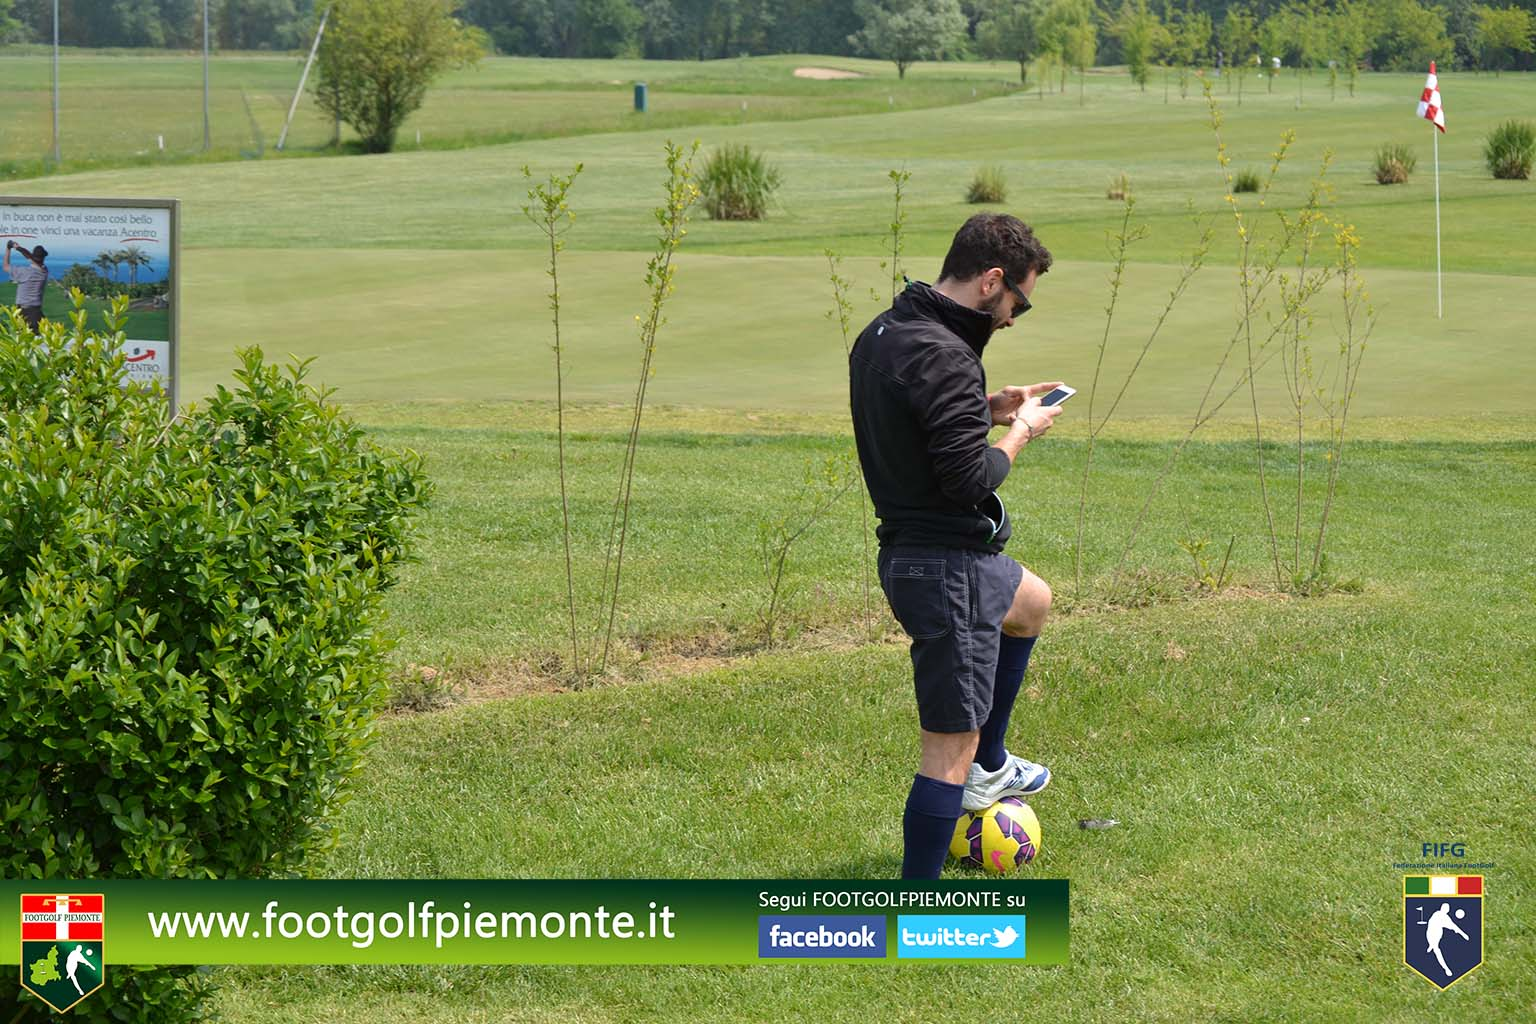 FOTO 9 Regions' Cup Footgolf Piemonte 2016 Golf Città di Asti (At) 30apr16-49